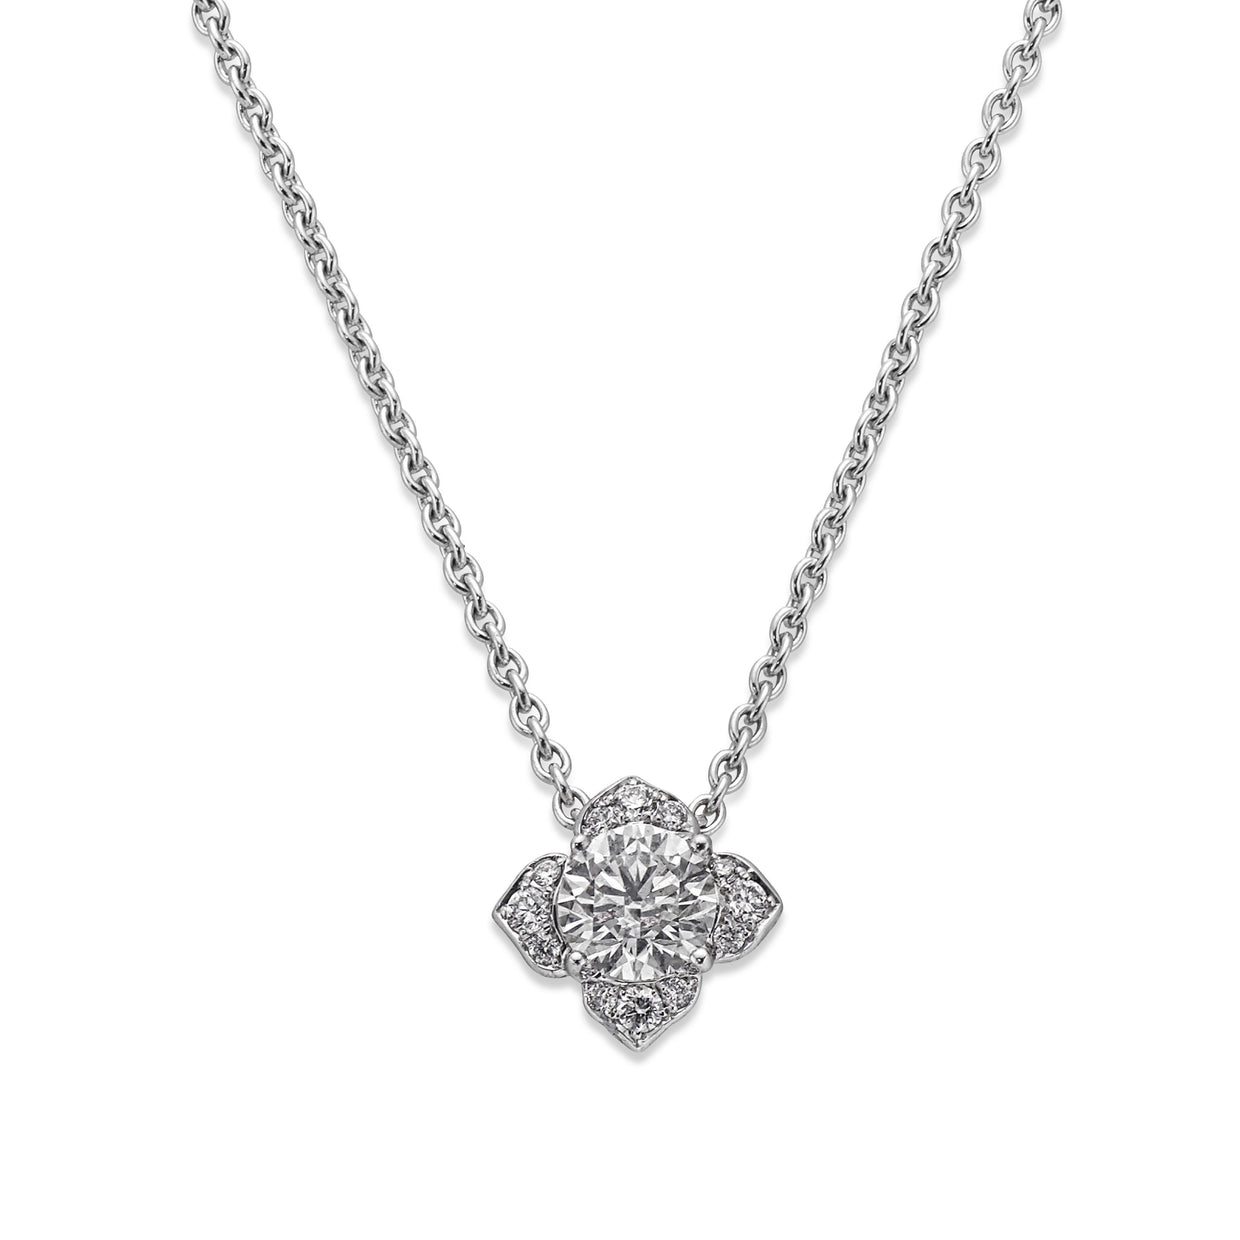 Round Brilliant-Cut Diamond Pendant in 18ct White Gold-Hamilton & Inches